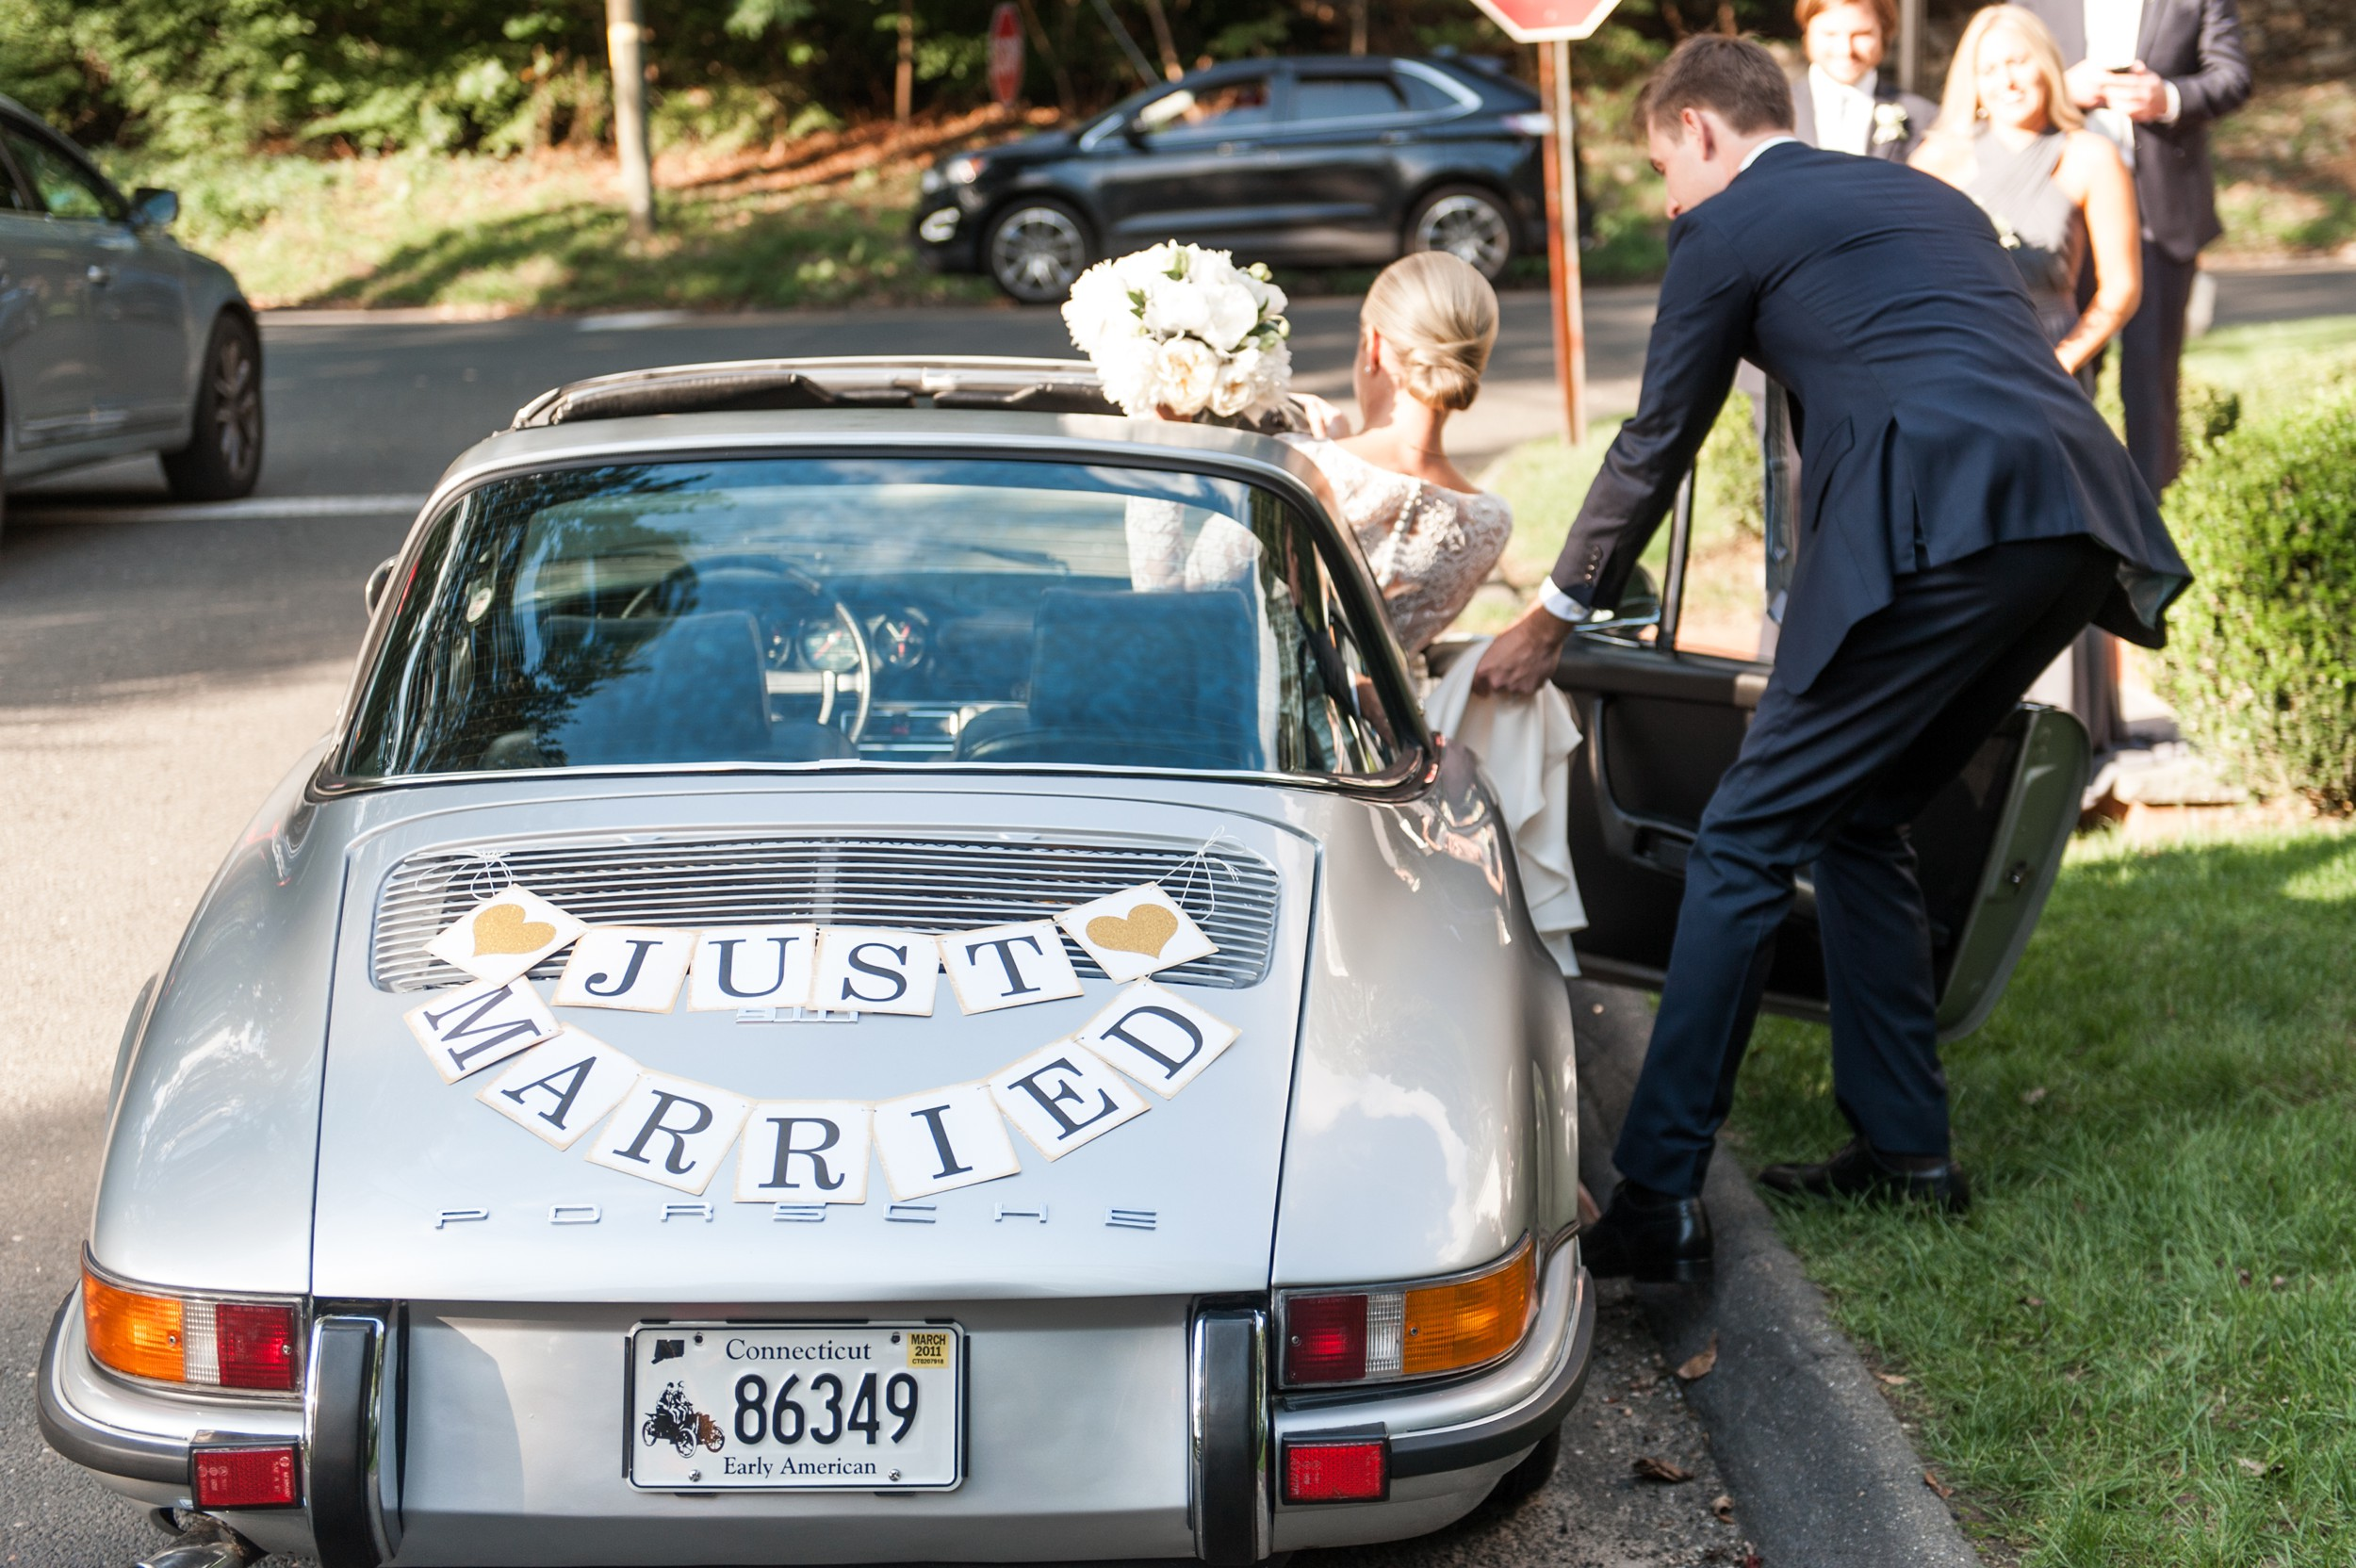 Wee Burn Beach Club Wedding Darien CT Talmidge Hill Community Church Wedding Ceremony bride and groom in getaway car with just married sign